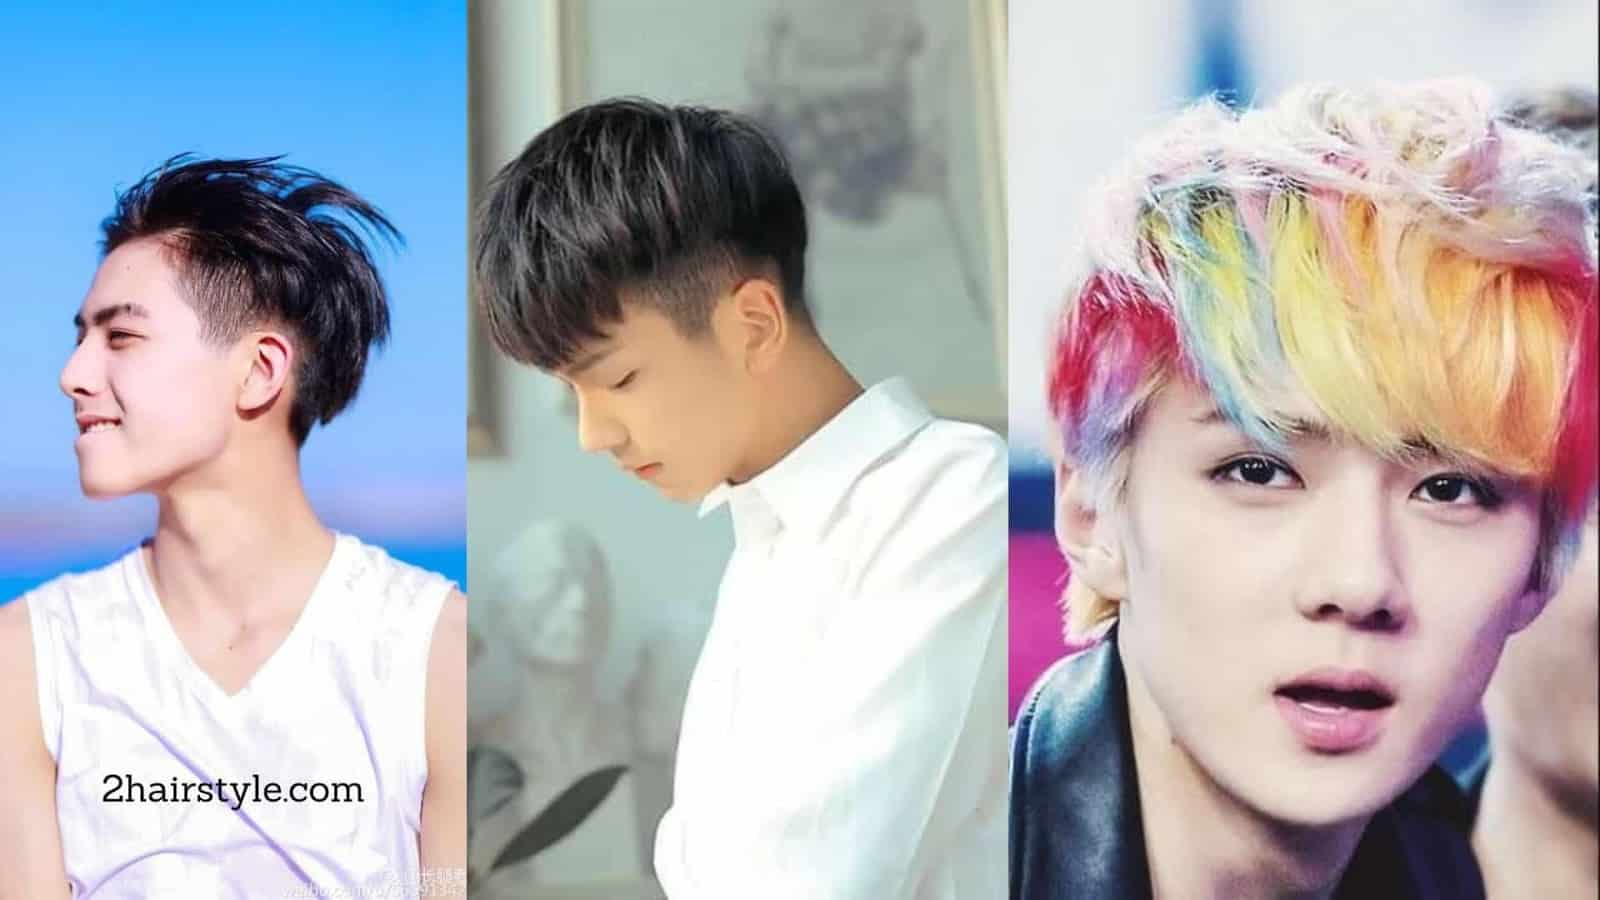 65 Korean Hairstyles For Men 2020 Video 2hairstyle